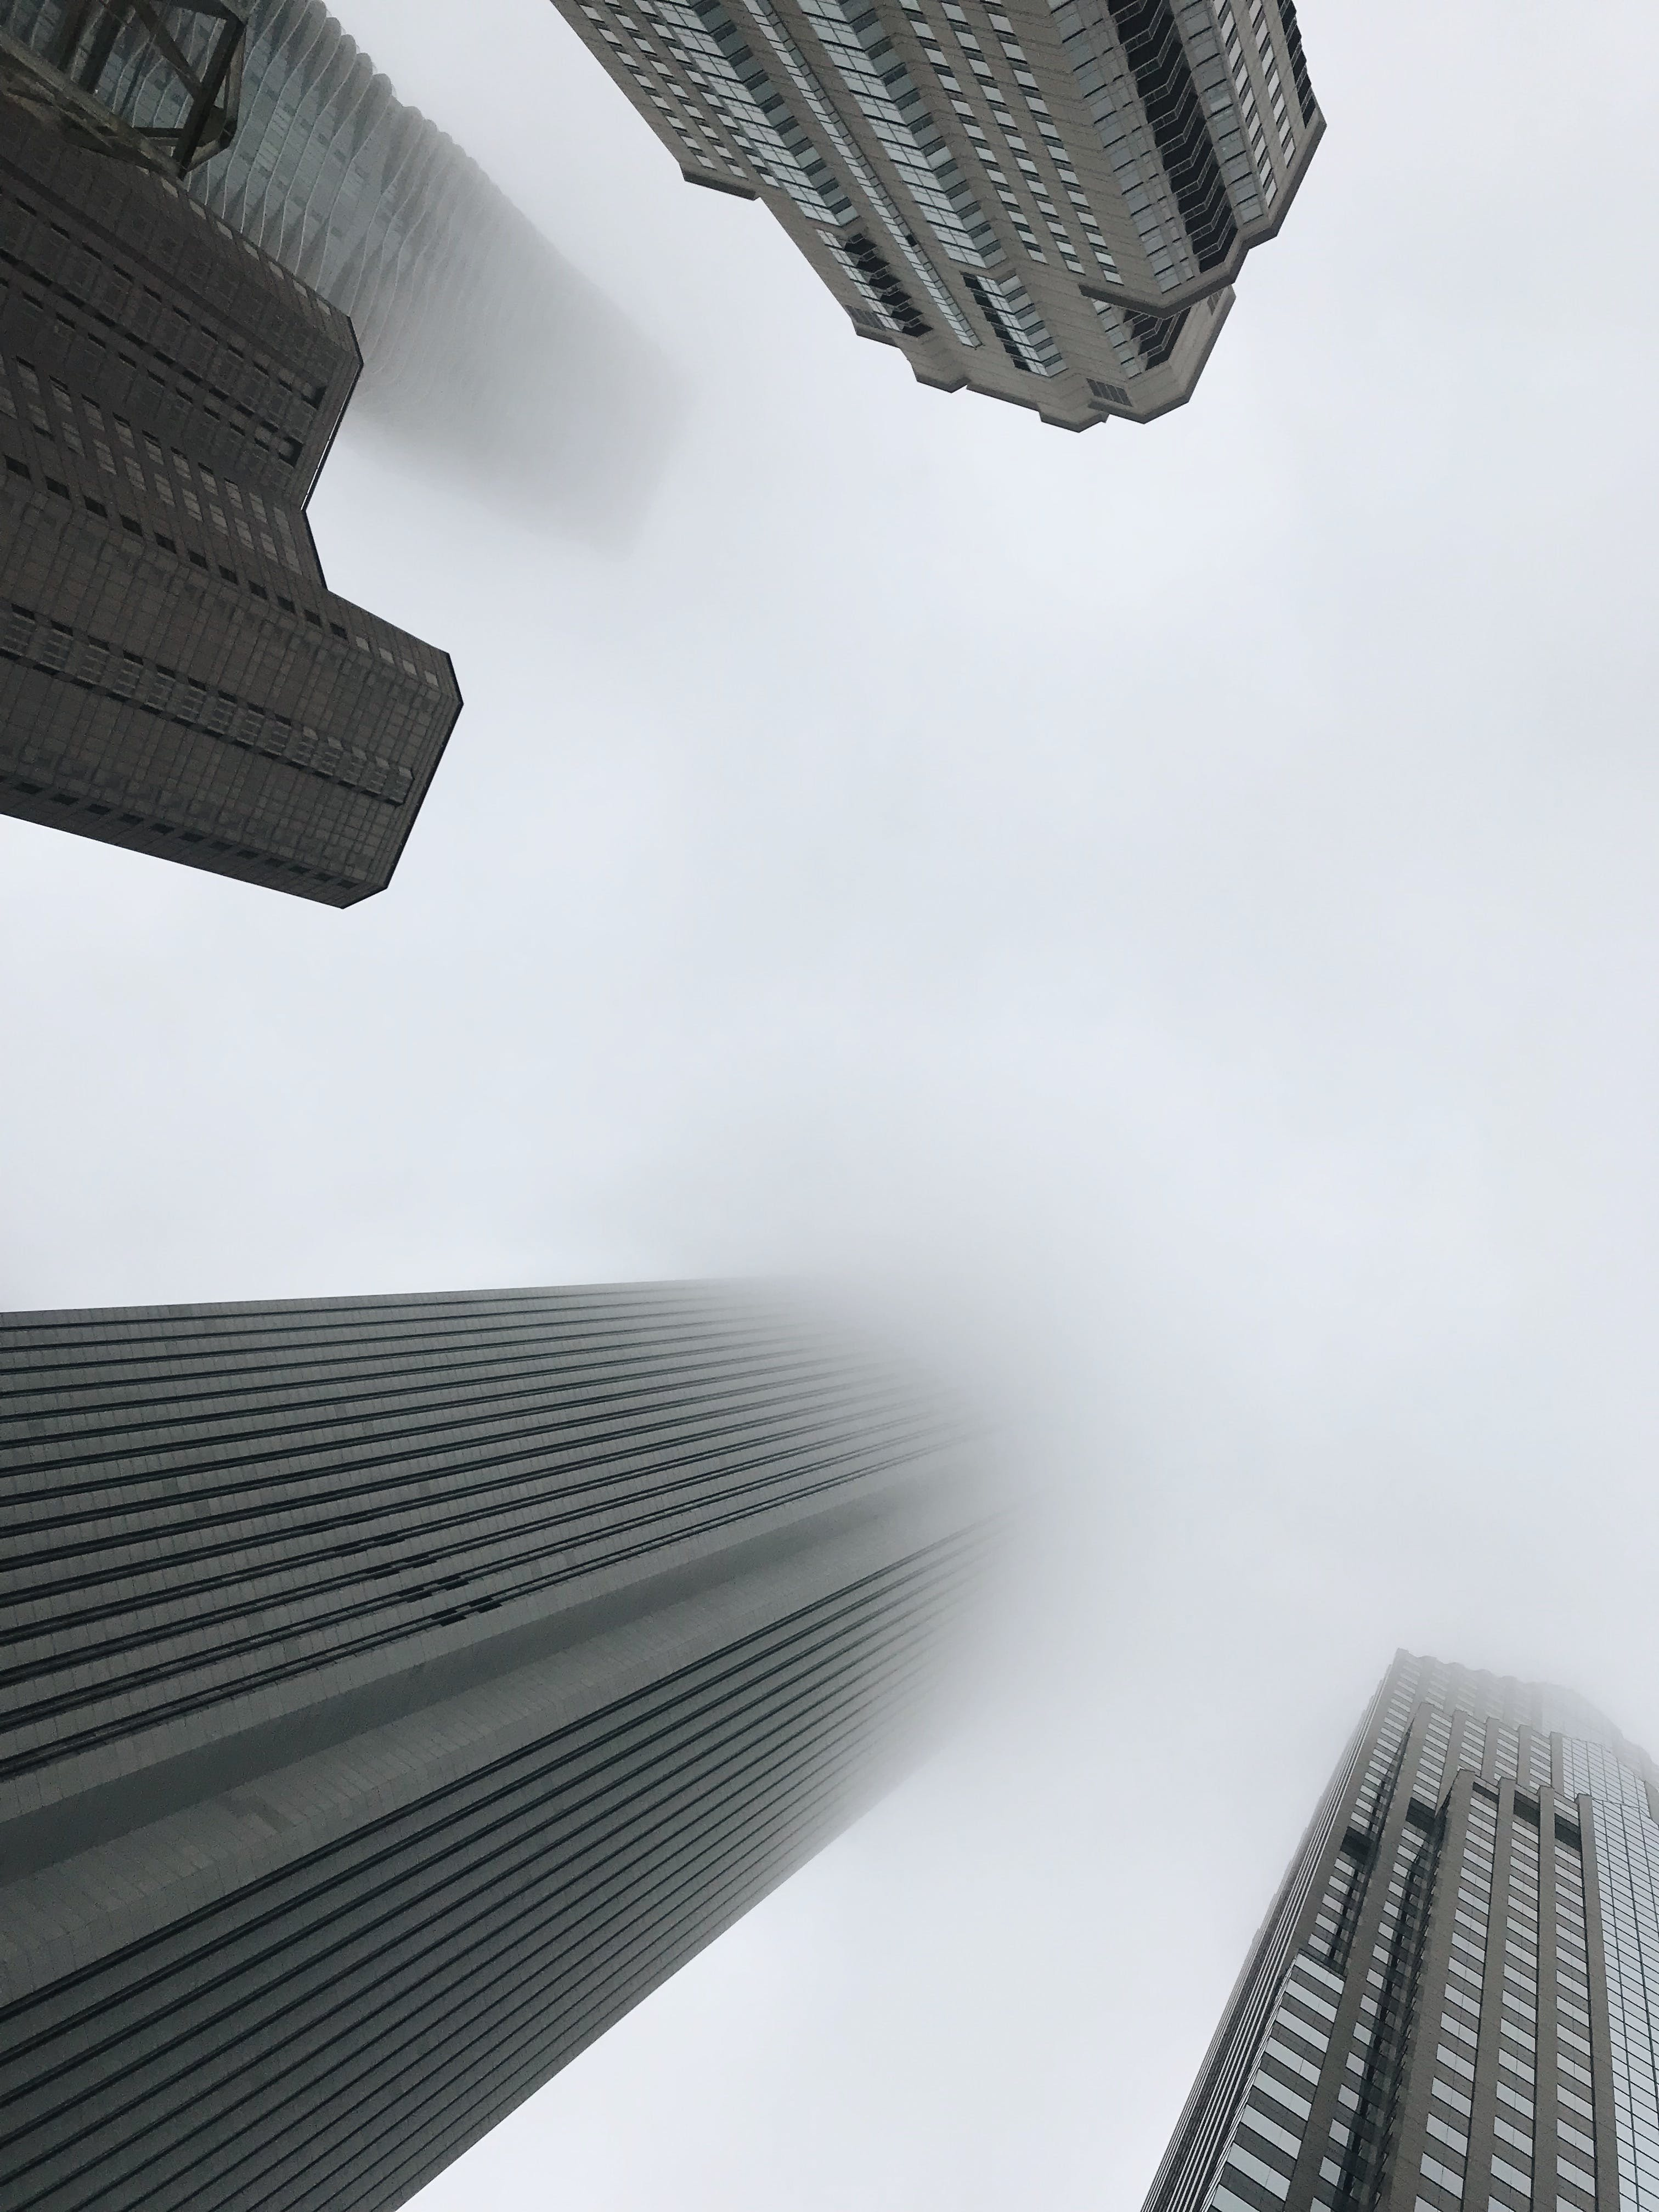 Worm's Eye View Photography of Buildings